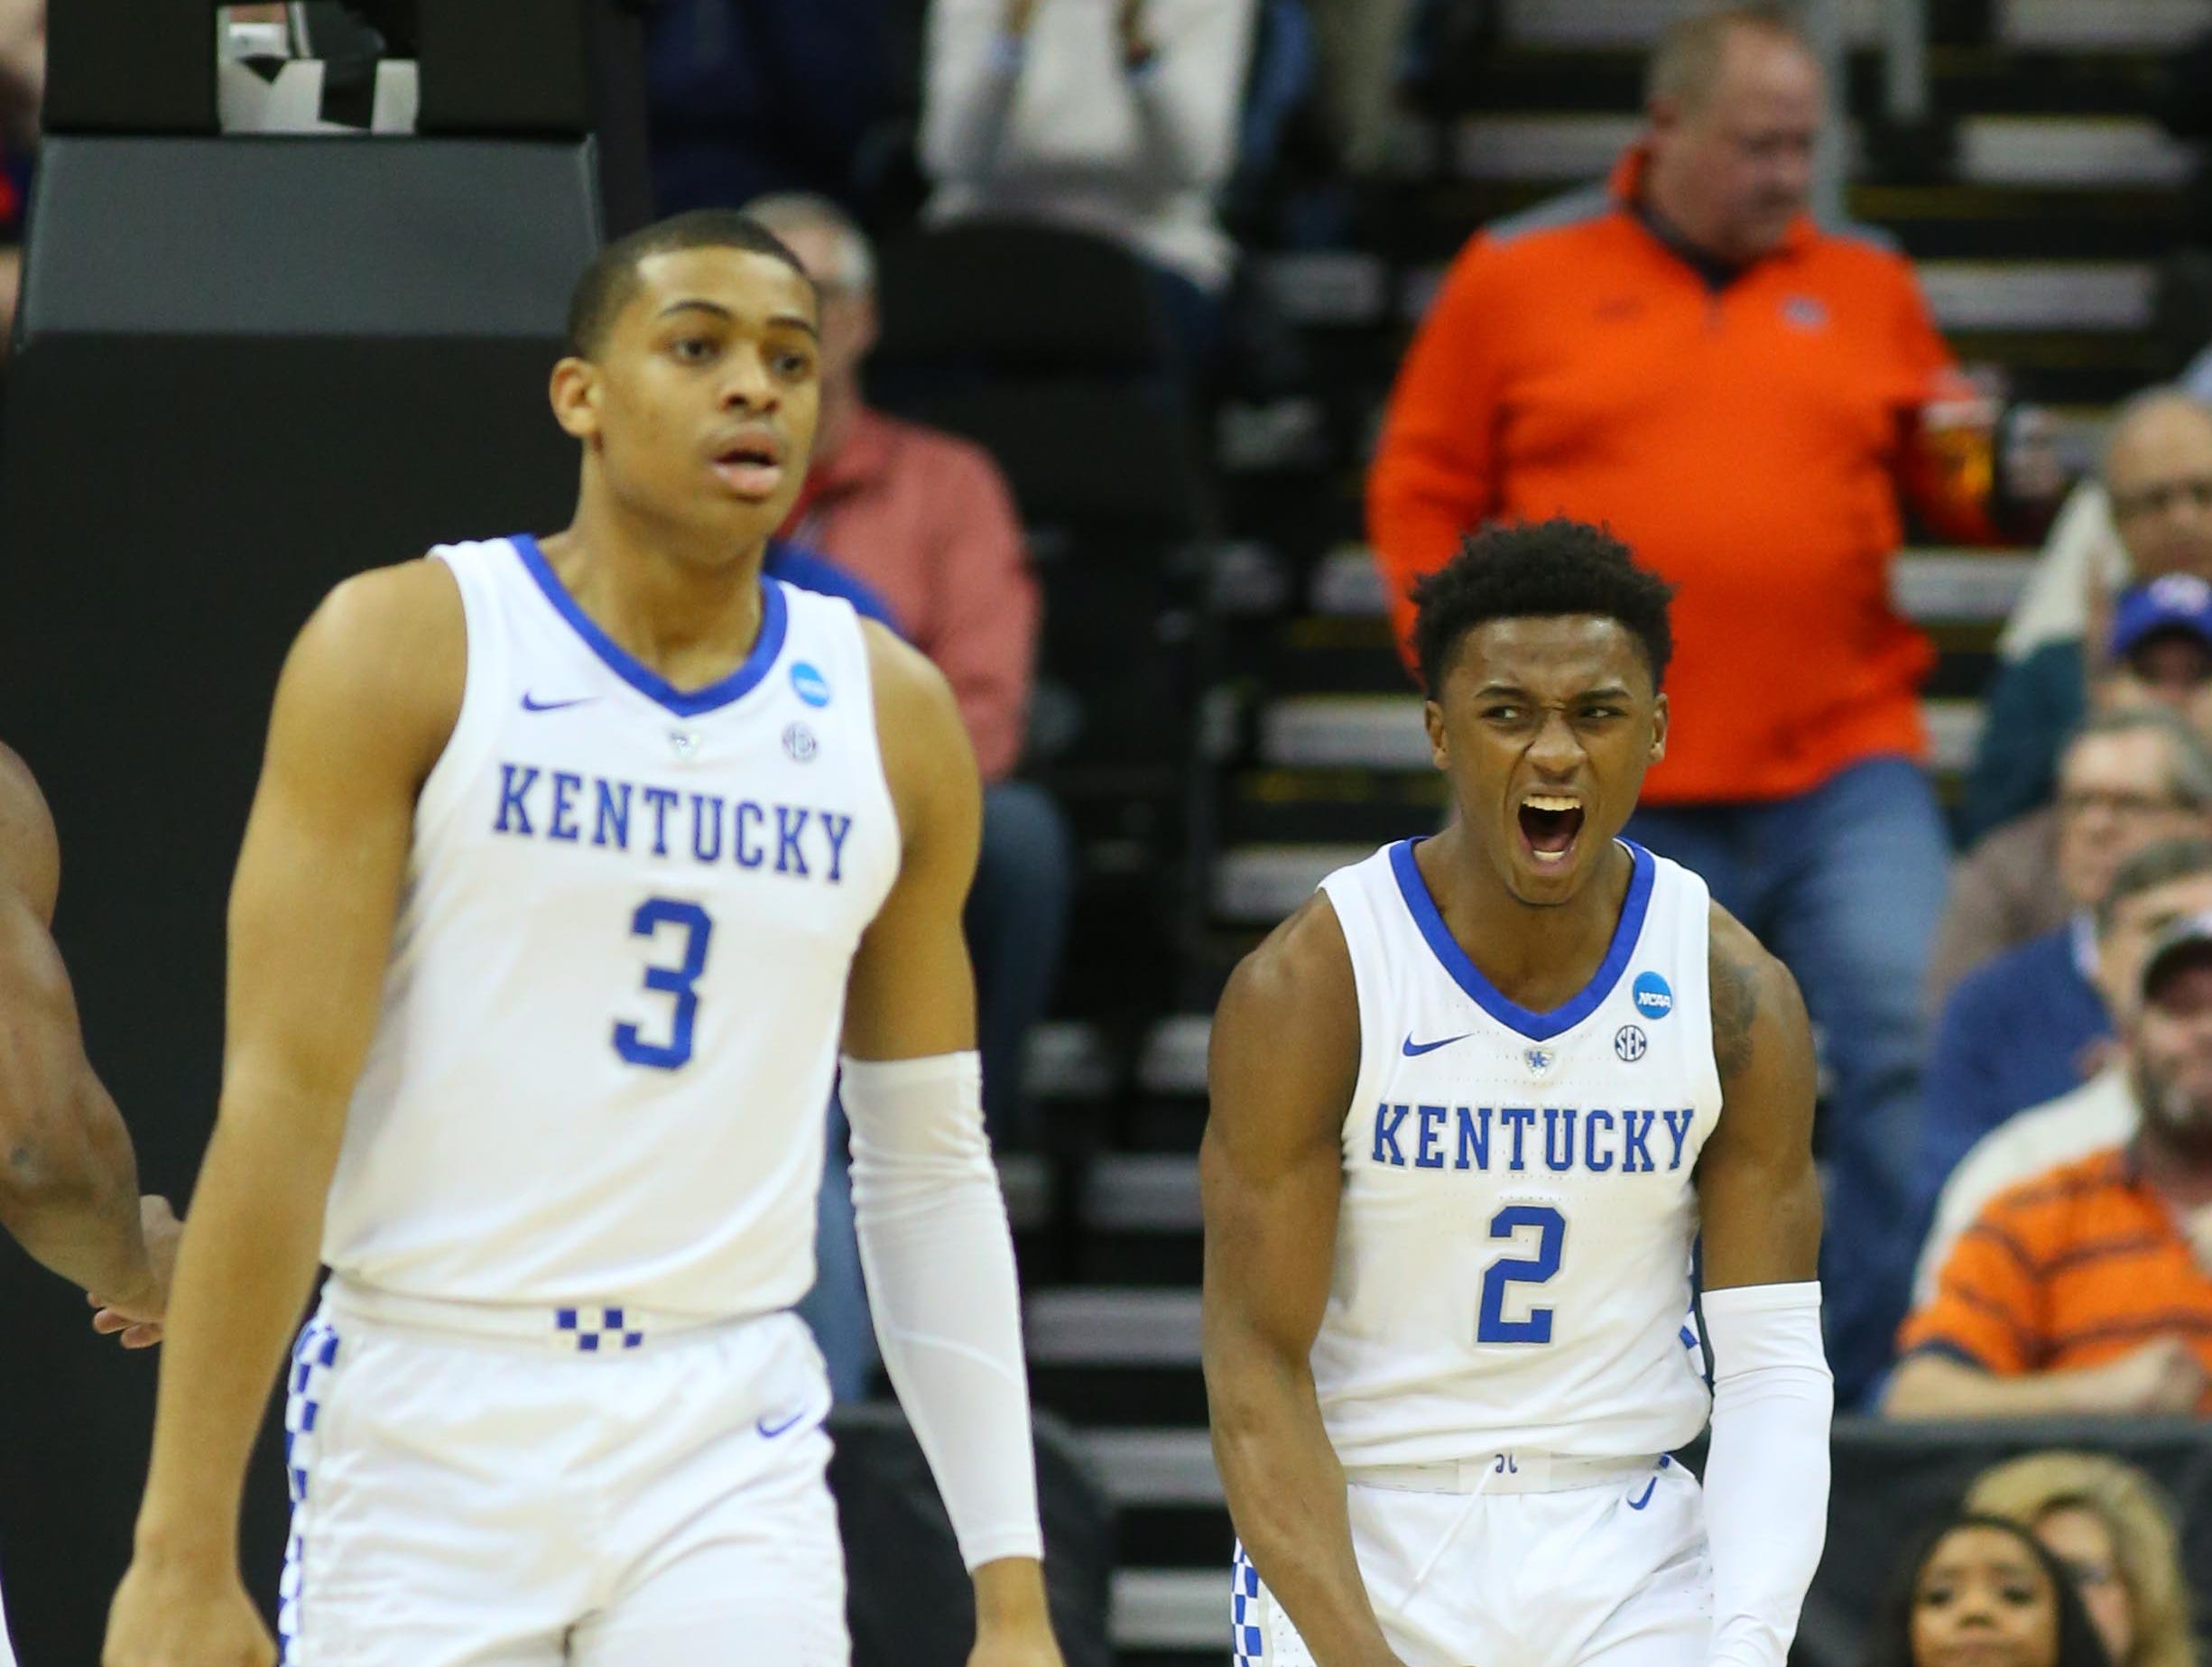 Mar 31, 2019; Kansas City, MO, United States; Kentucky Wildcats guard Ashton Hagans (2) celebrates against the Auburn Tigers during the first half in the championship game of the midwest regional of the 2019 NCAA Tournament at Sprint Center. Mandatory Credit: Jay Biggerstaff-USA TODAY Sports